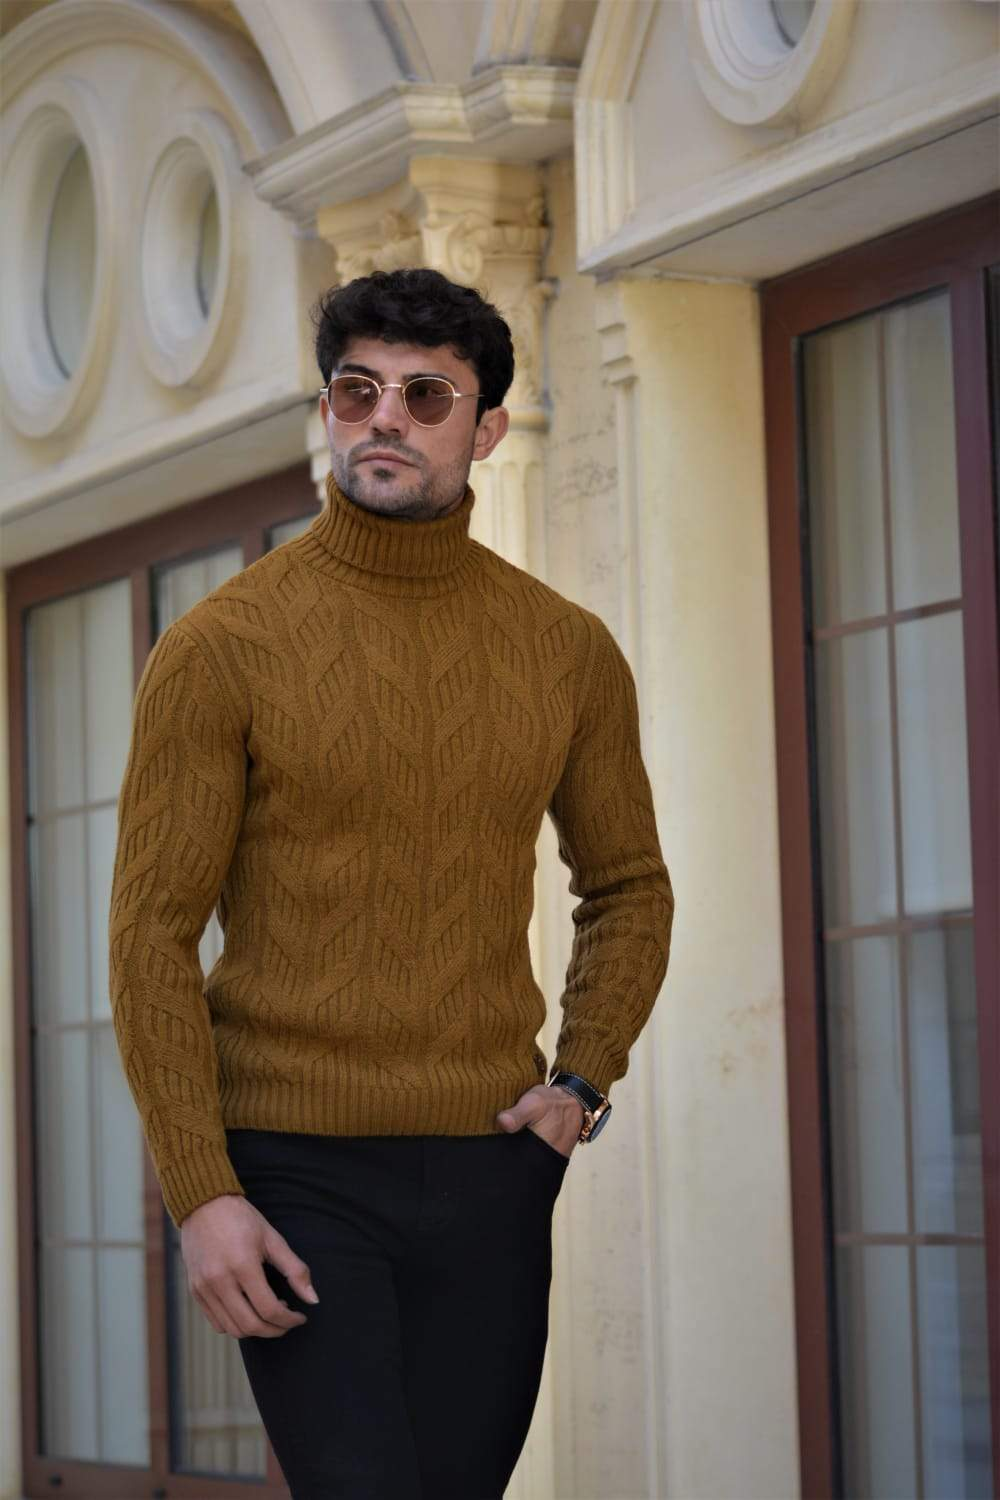 Vicenza Slim-fit Patterned Turtleneck wool Knitwear Camel